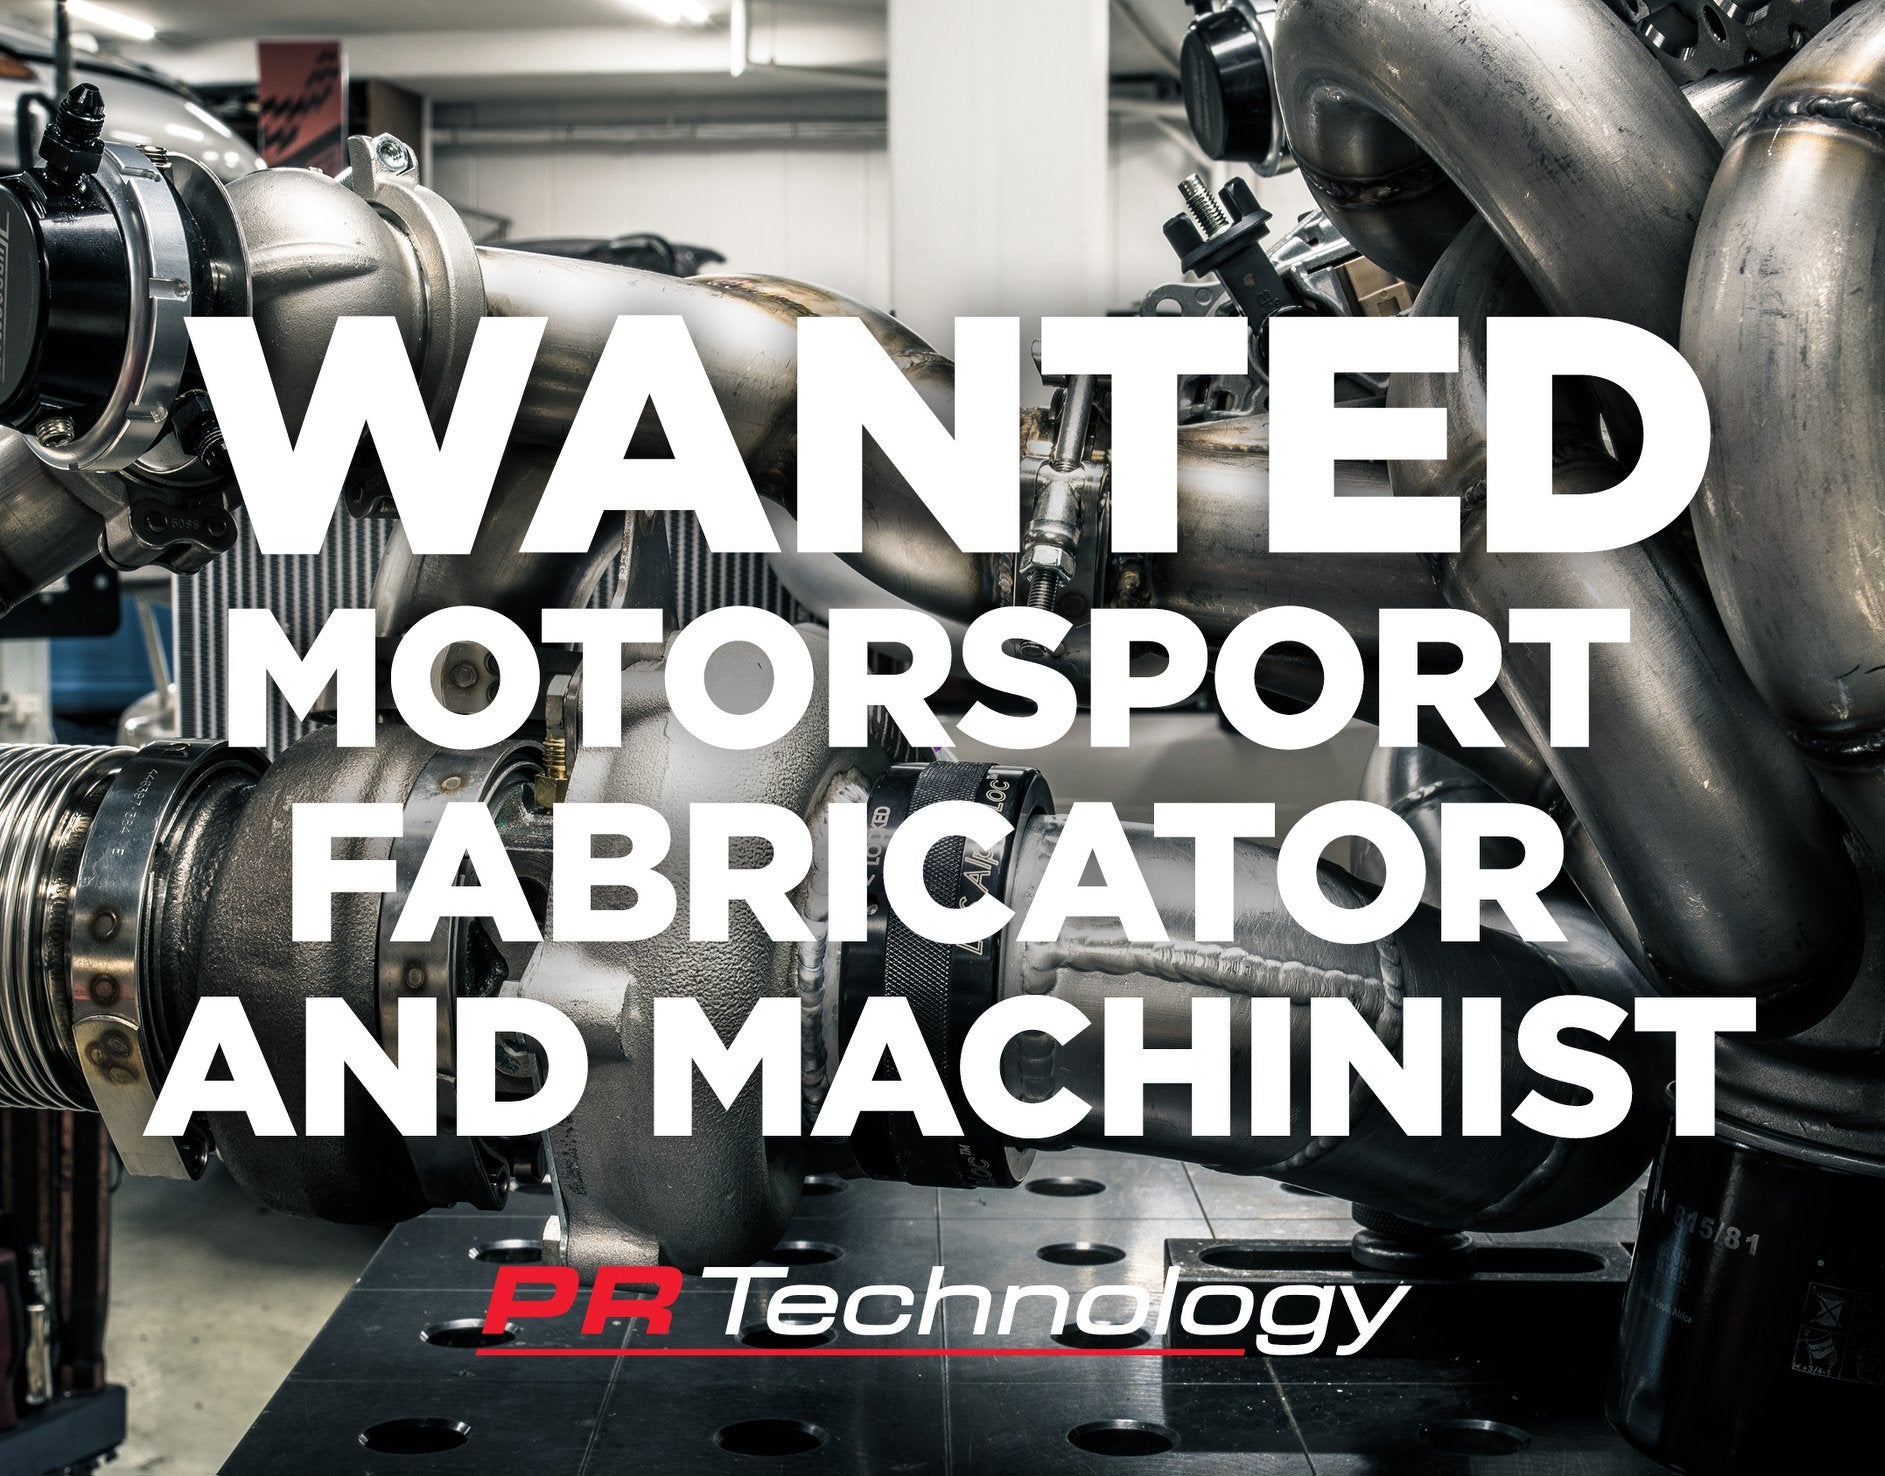 Motorsport Fabricator & Machinist WANTED